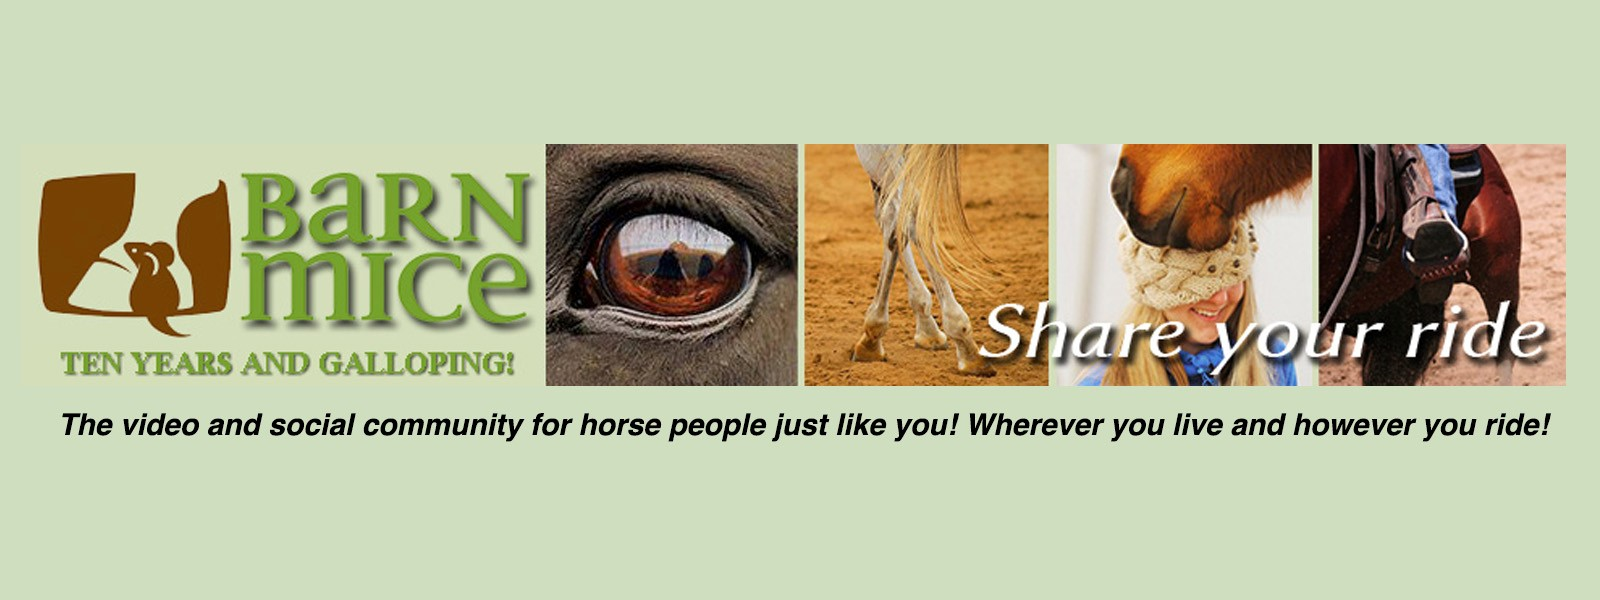 barn mice equestrian community banner